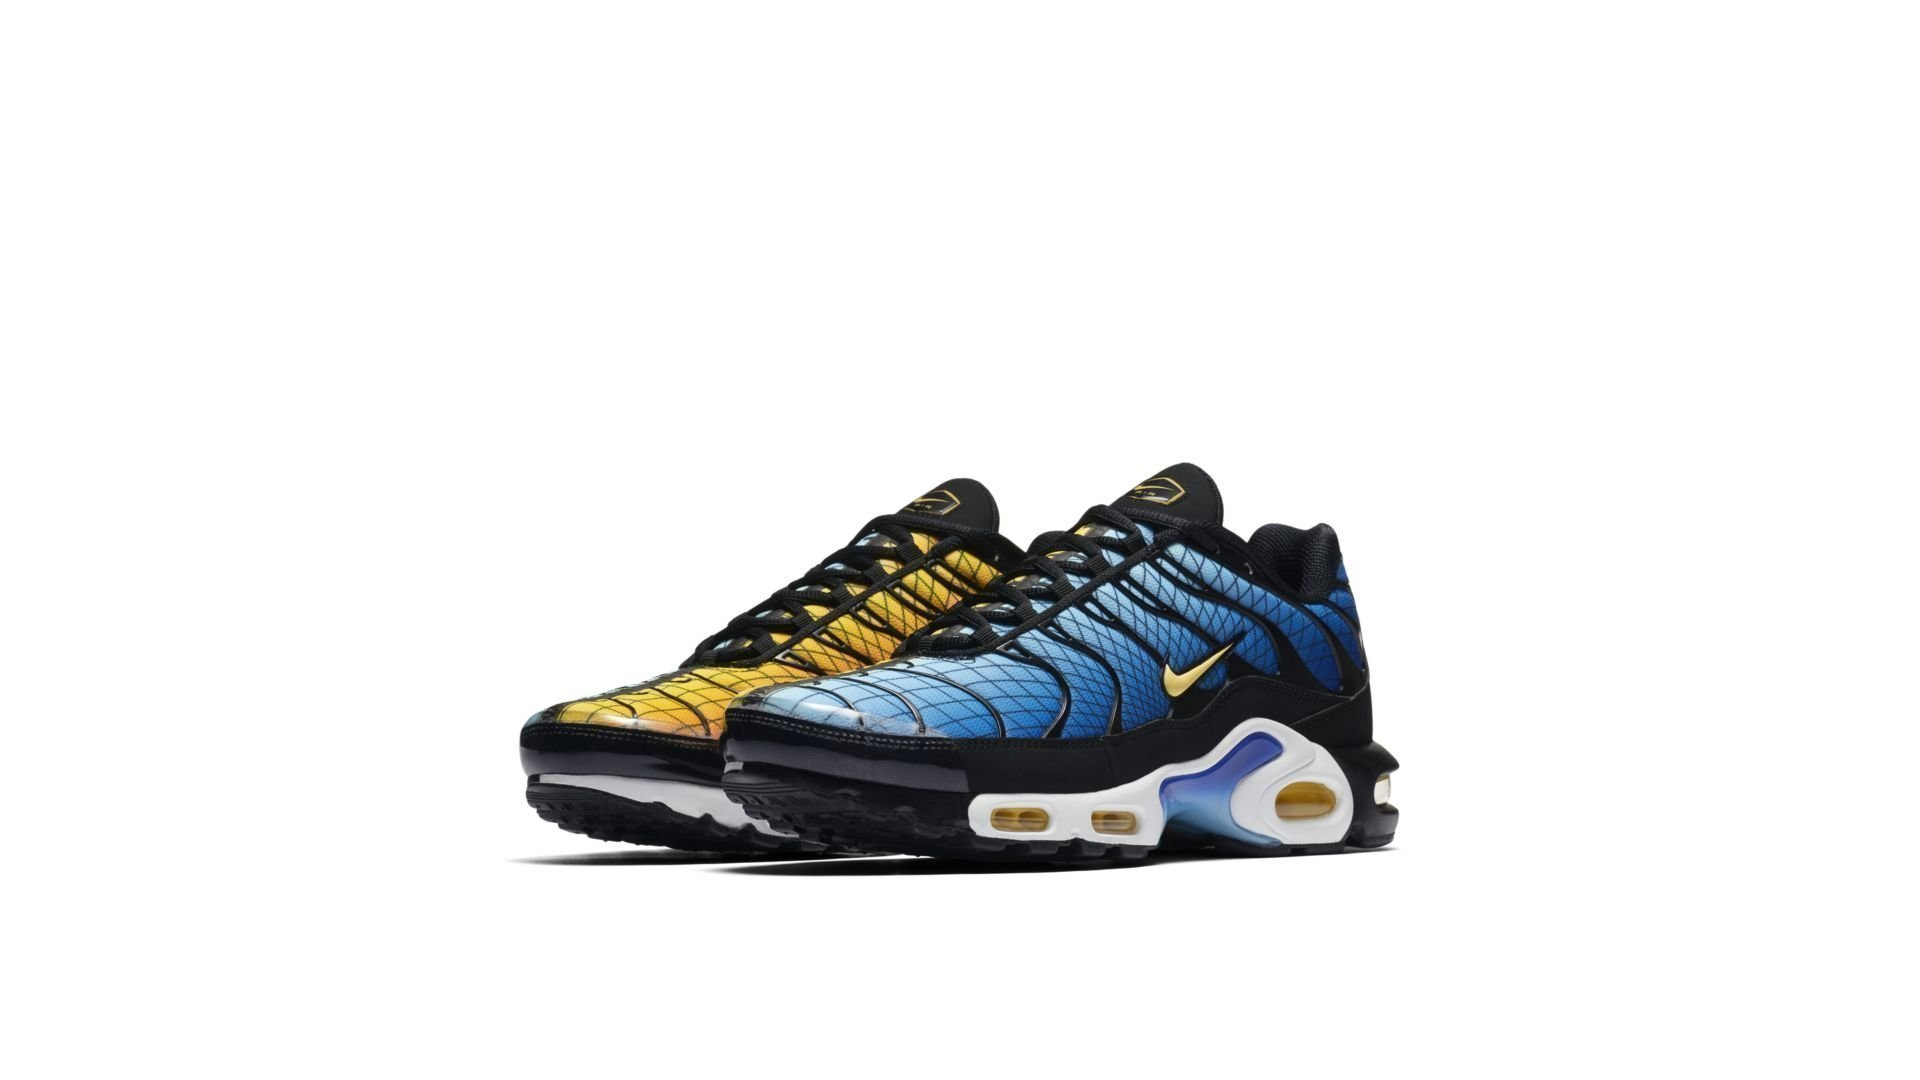 Nike Air Max Plus Greedy (AV7021-001)